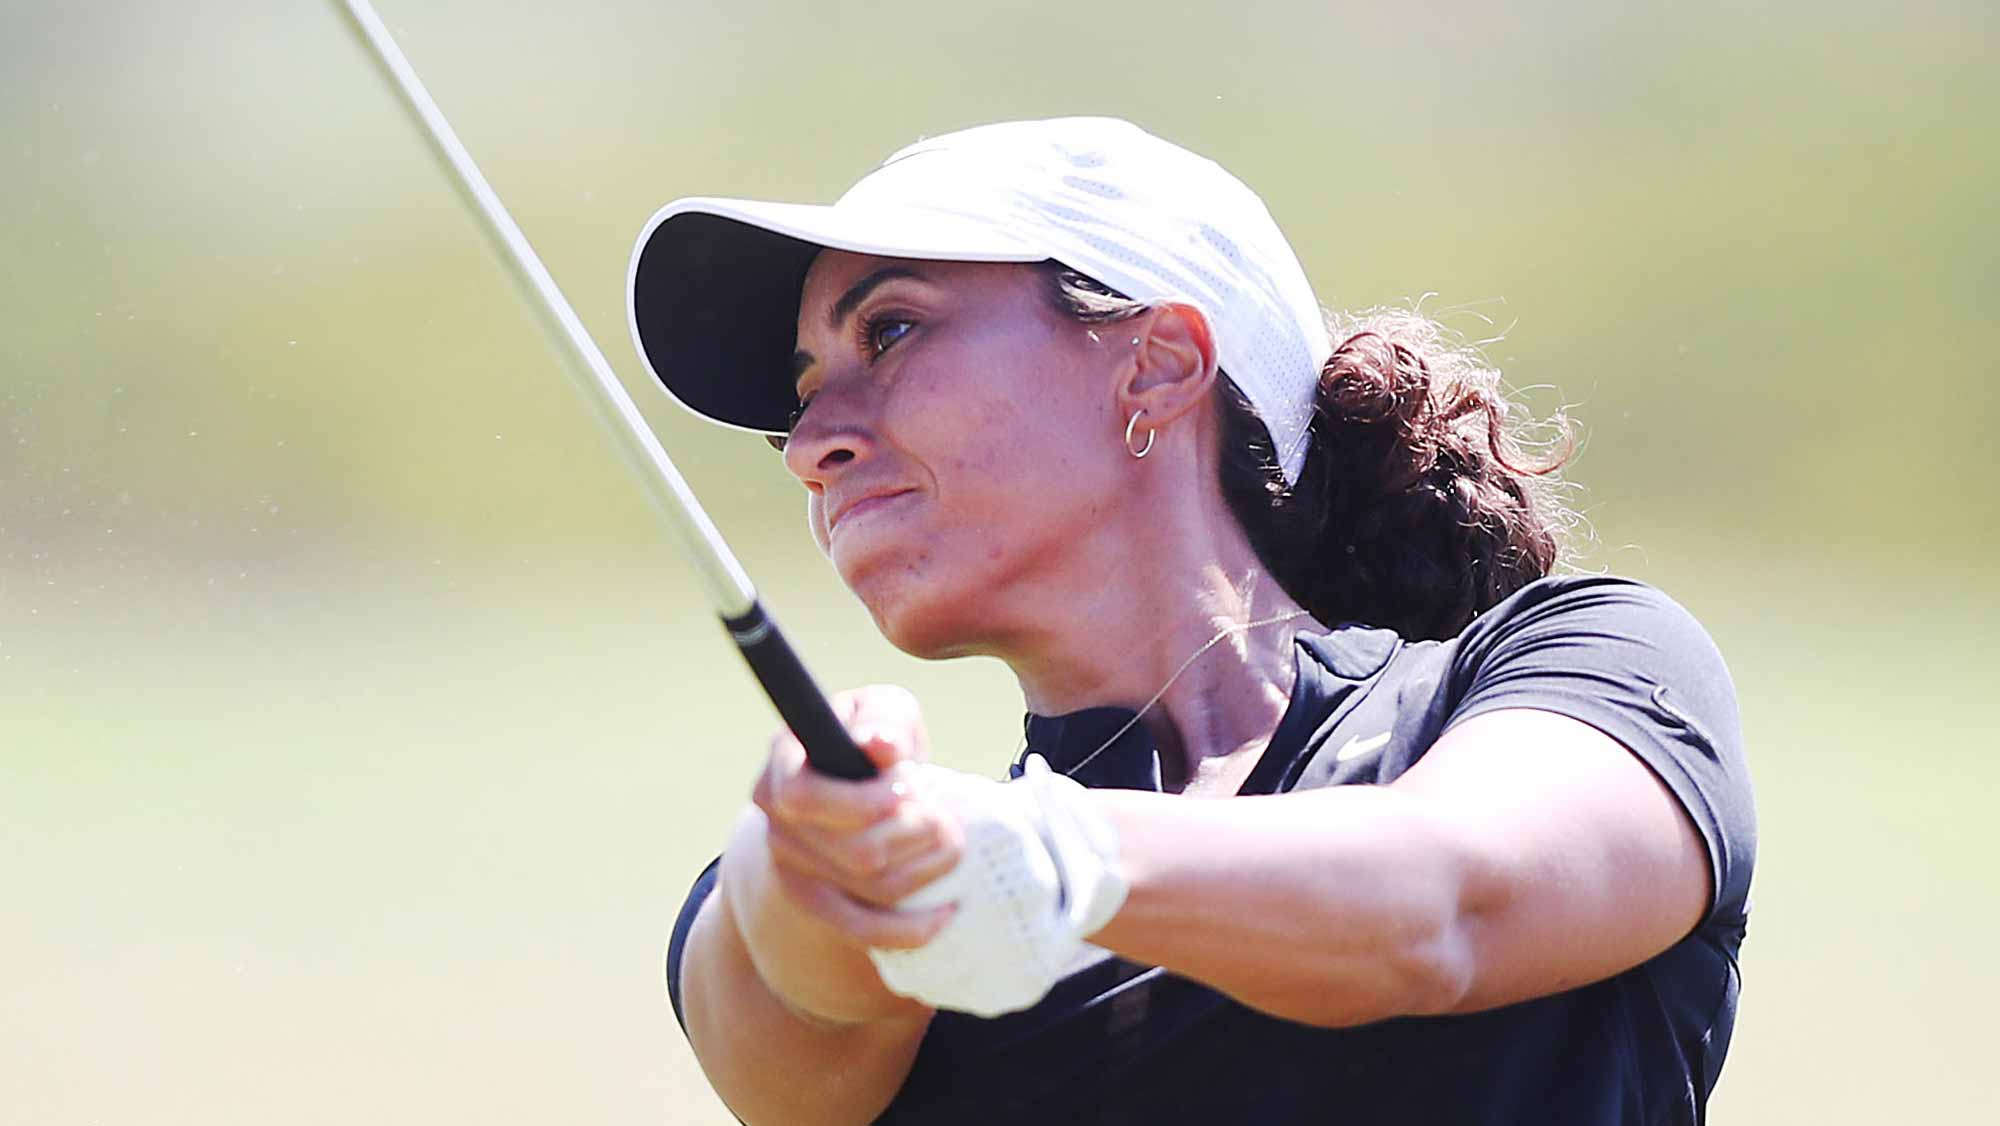 Kim Kaufman leads LPGA's Vic Open by 2 strokes